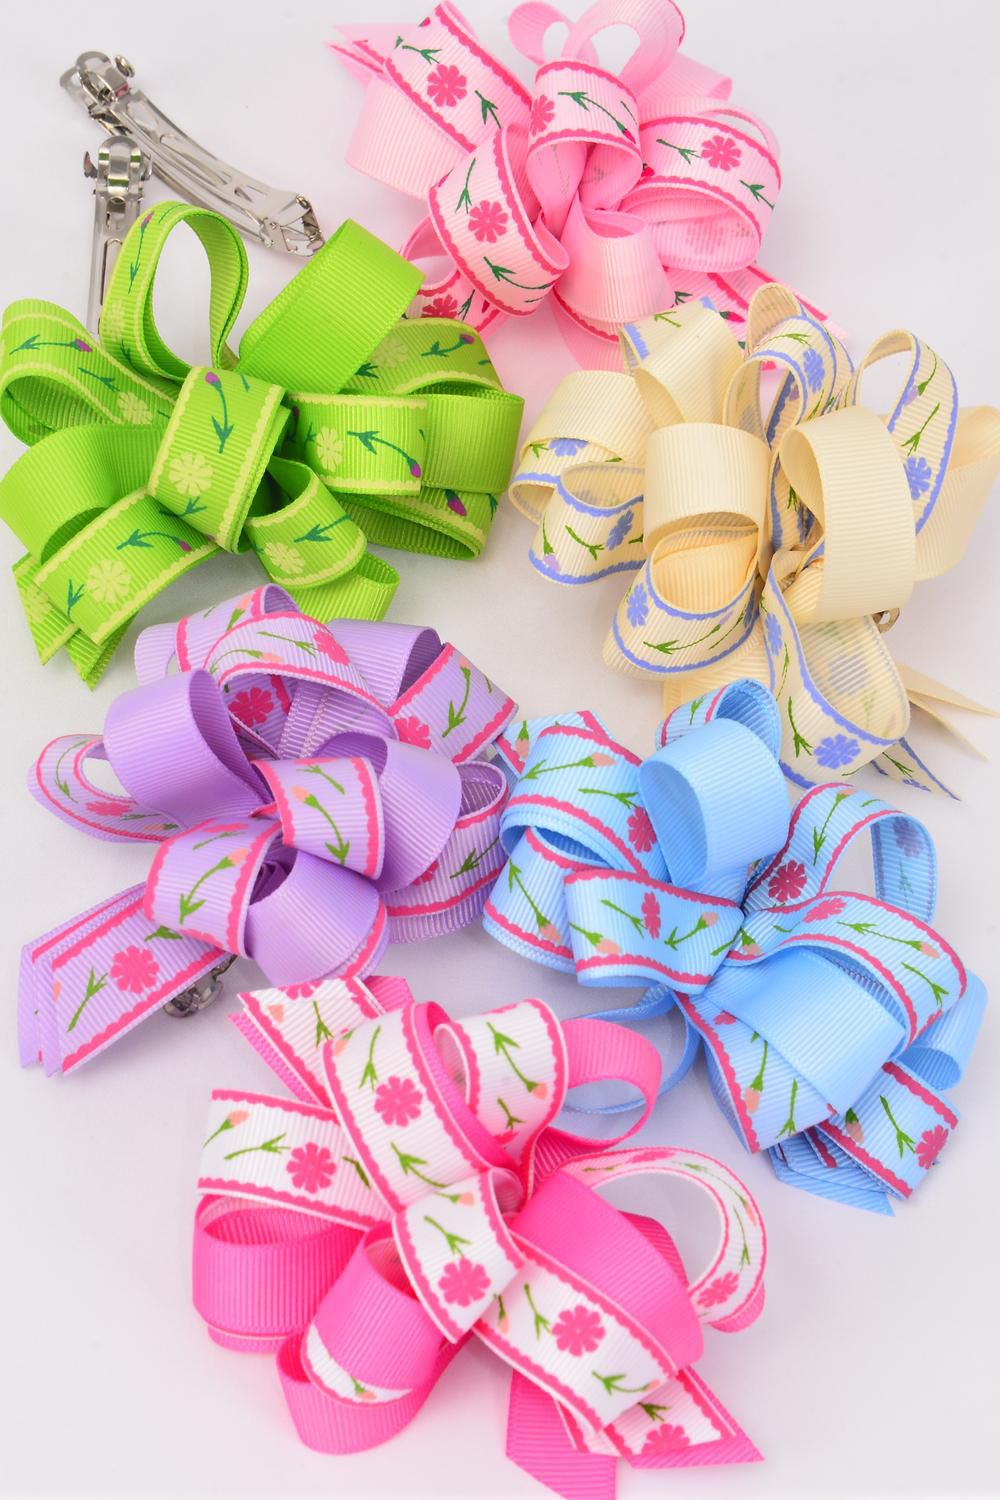 "Hair Bow Grosgrain Loop Bow Flower Print French Clip/DZ **French Clip** Size-5""x 4"" Wide,2 Hot Pink,2 Pink,2 Blue,2 Lavender,2 Lime,2 Beige,6 Color Asst,Clip Strip & UPC Code"